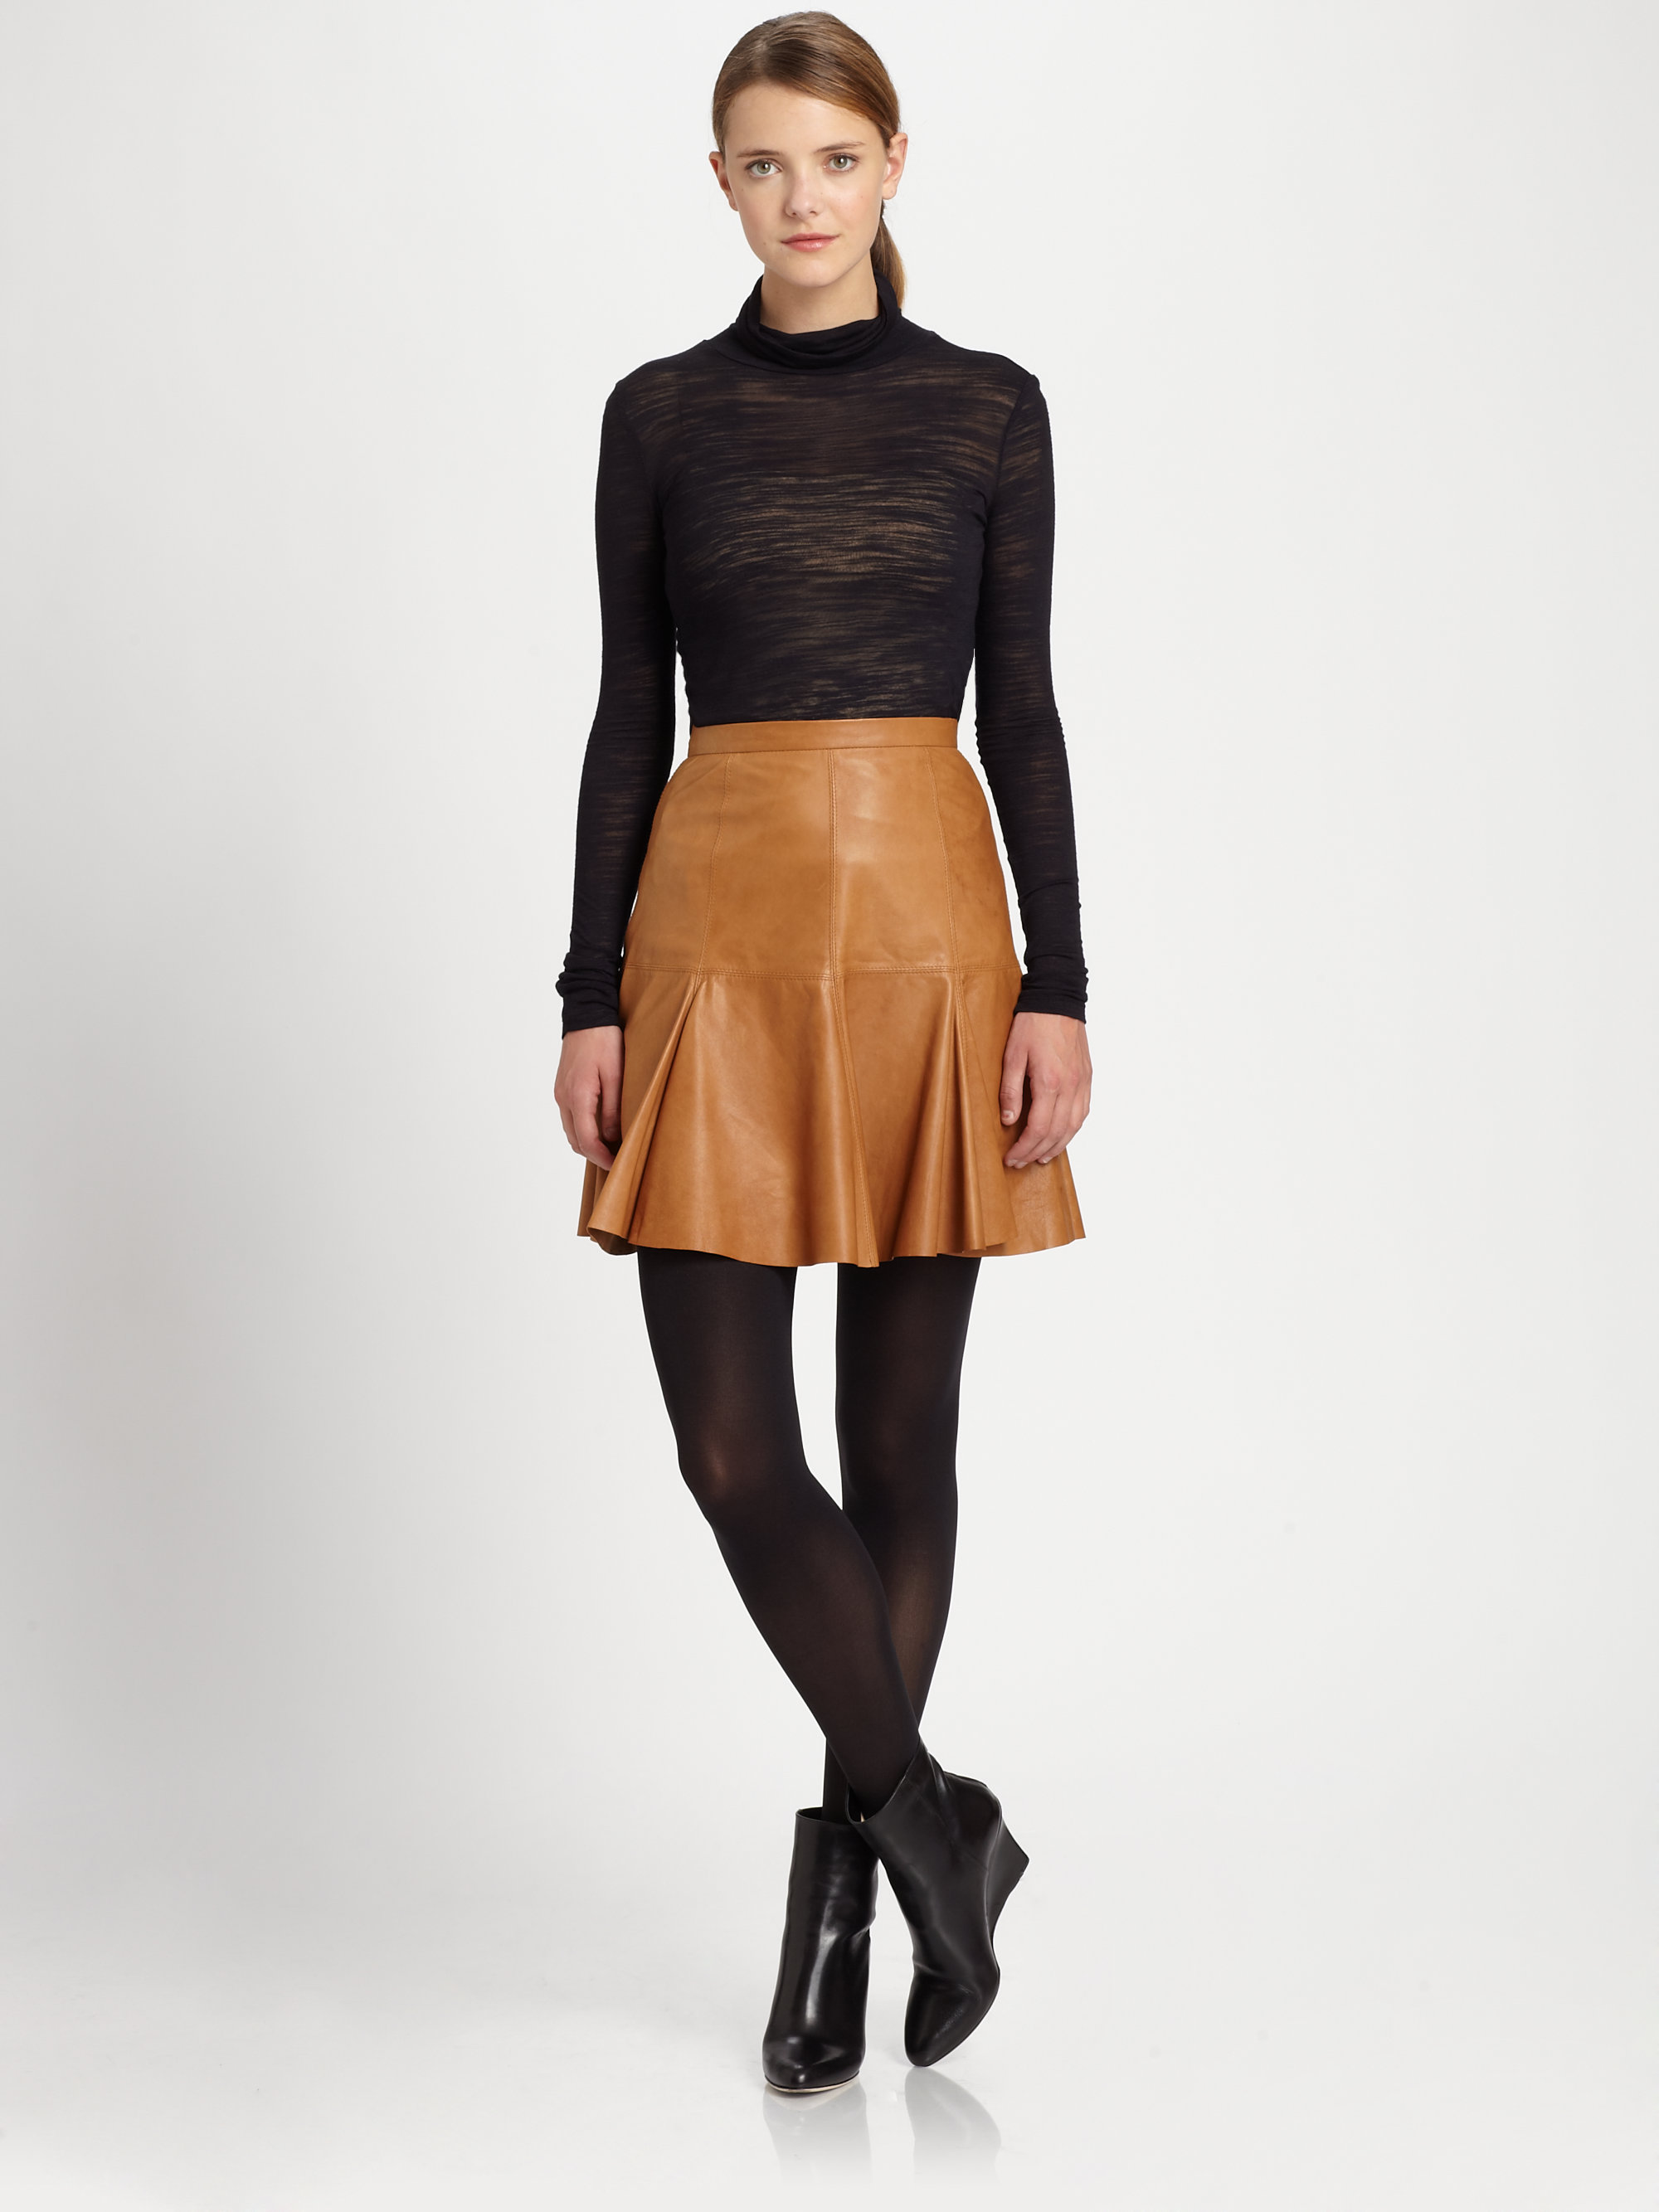 Halston Flared Leather Skirt in Brown | Lyst